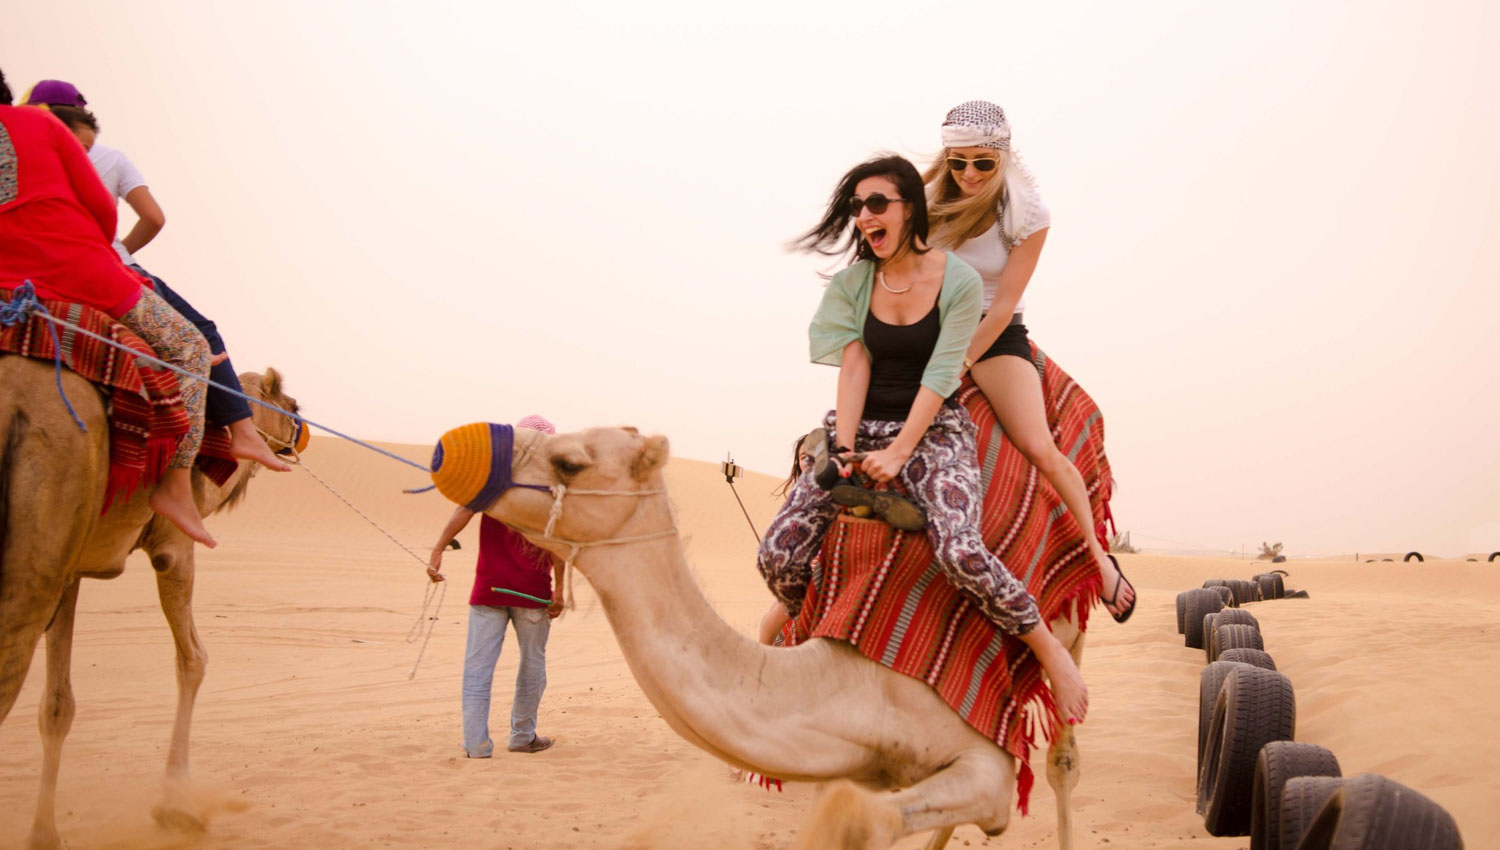 Image result for The Company has various Dubai desert safari tour offers.